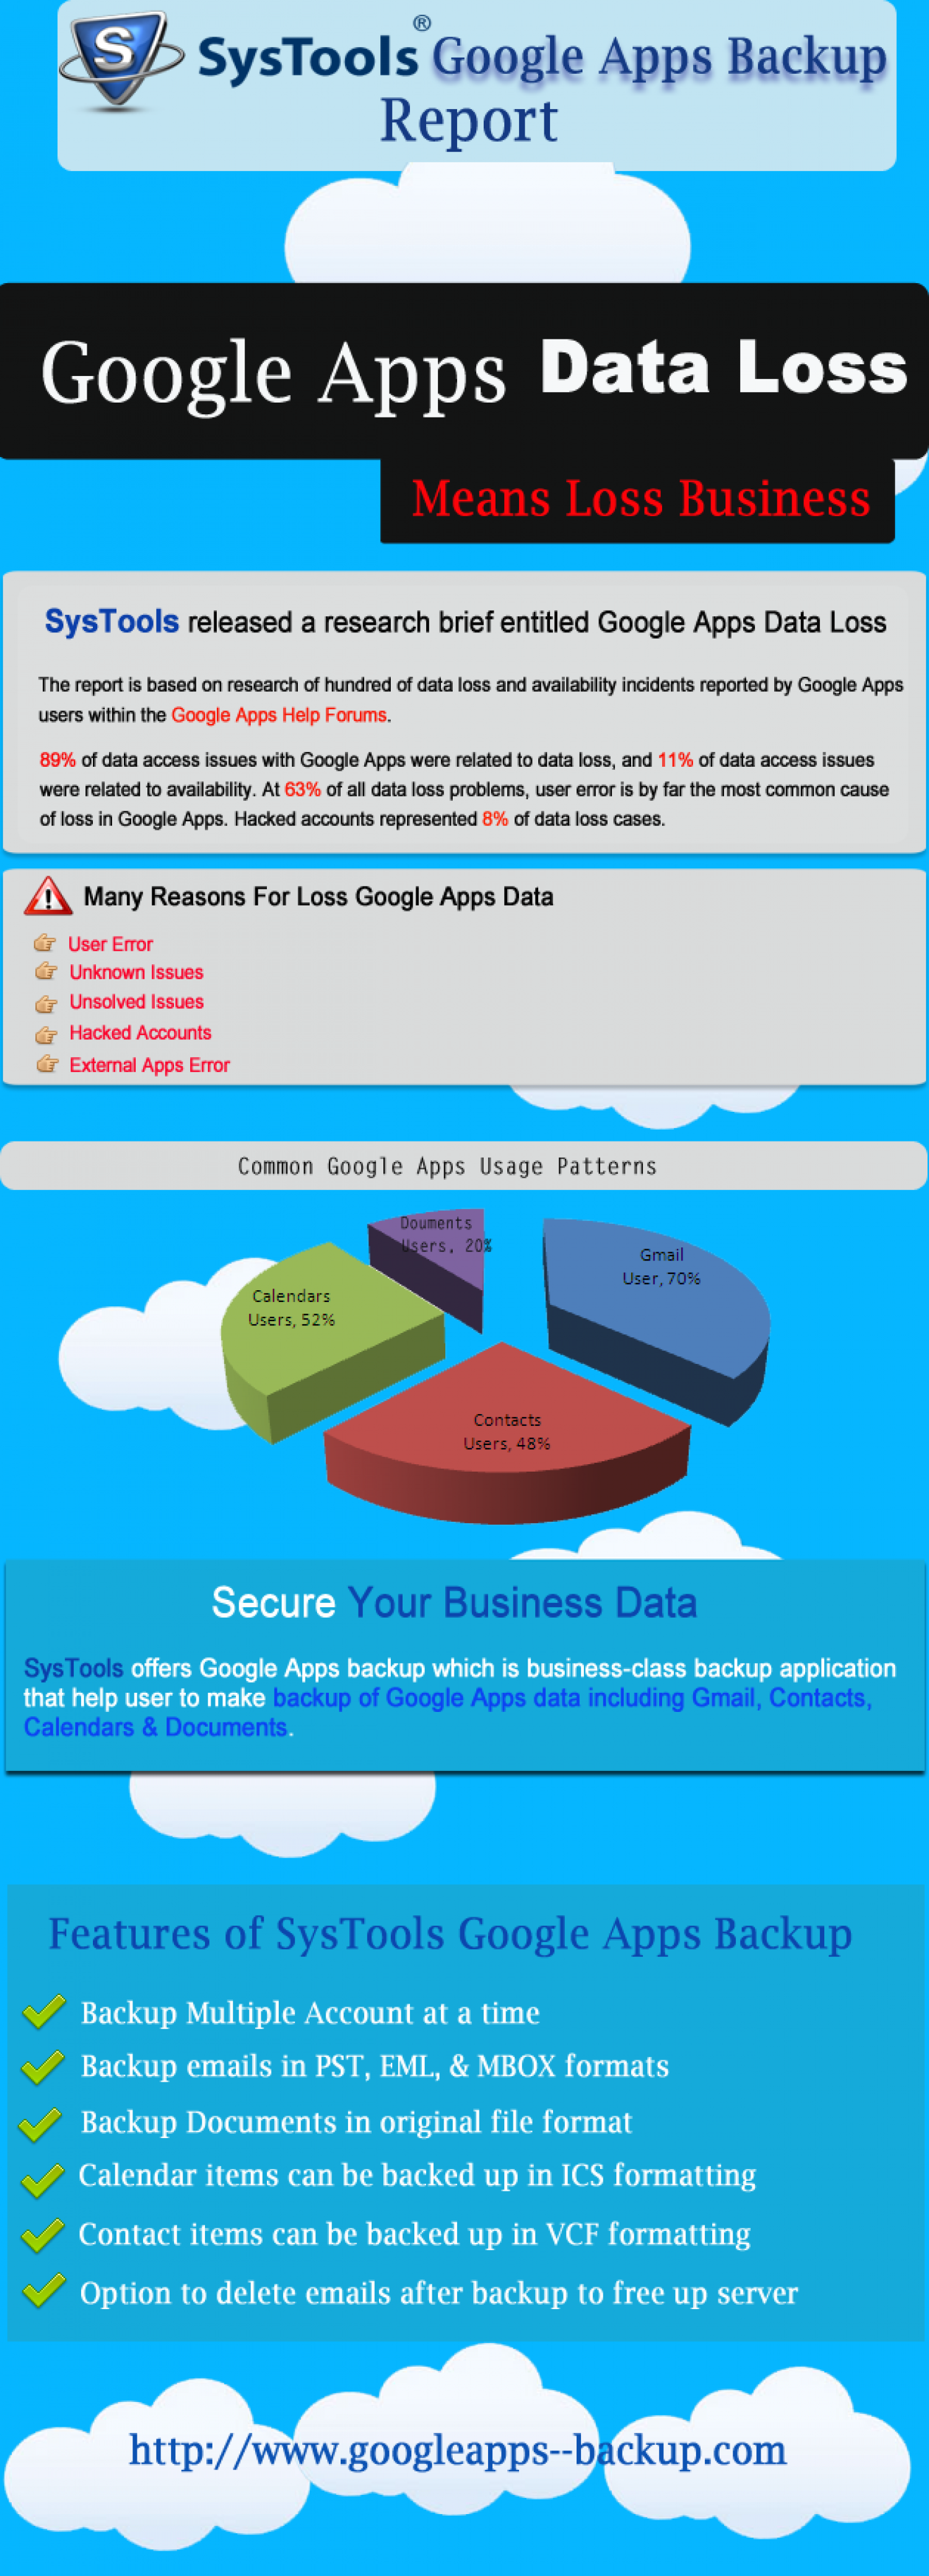 Google Apps Backup Tool To Backup Your Google Apps Data Infographic